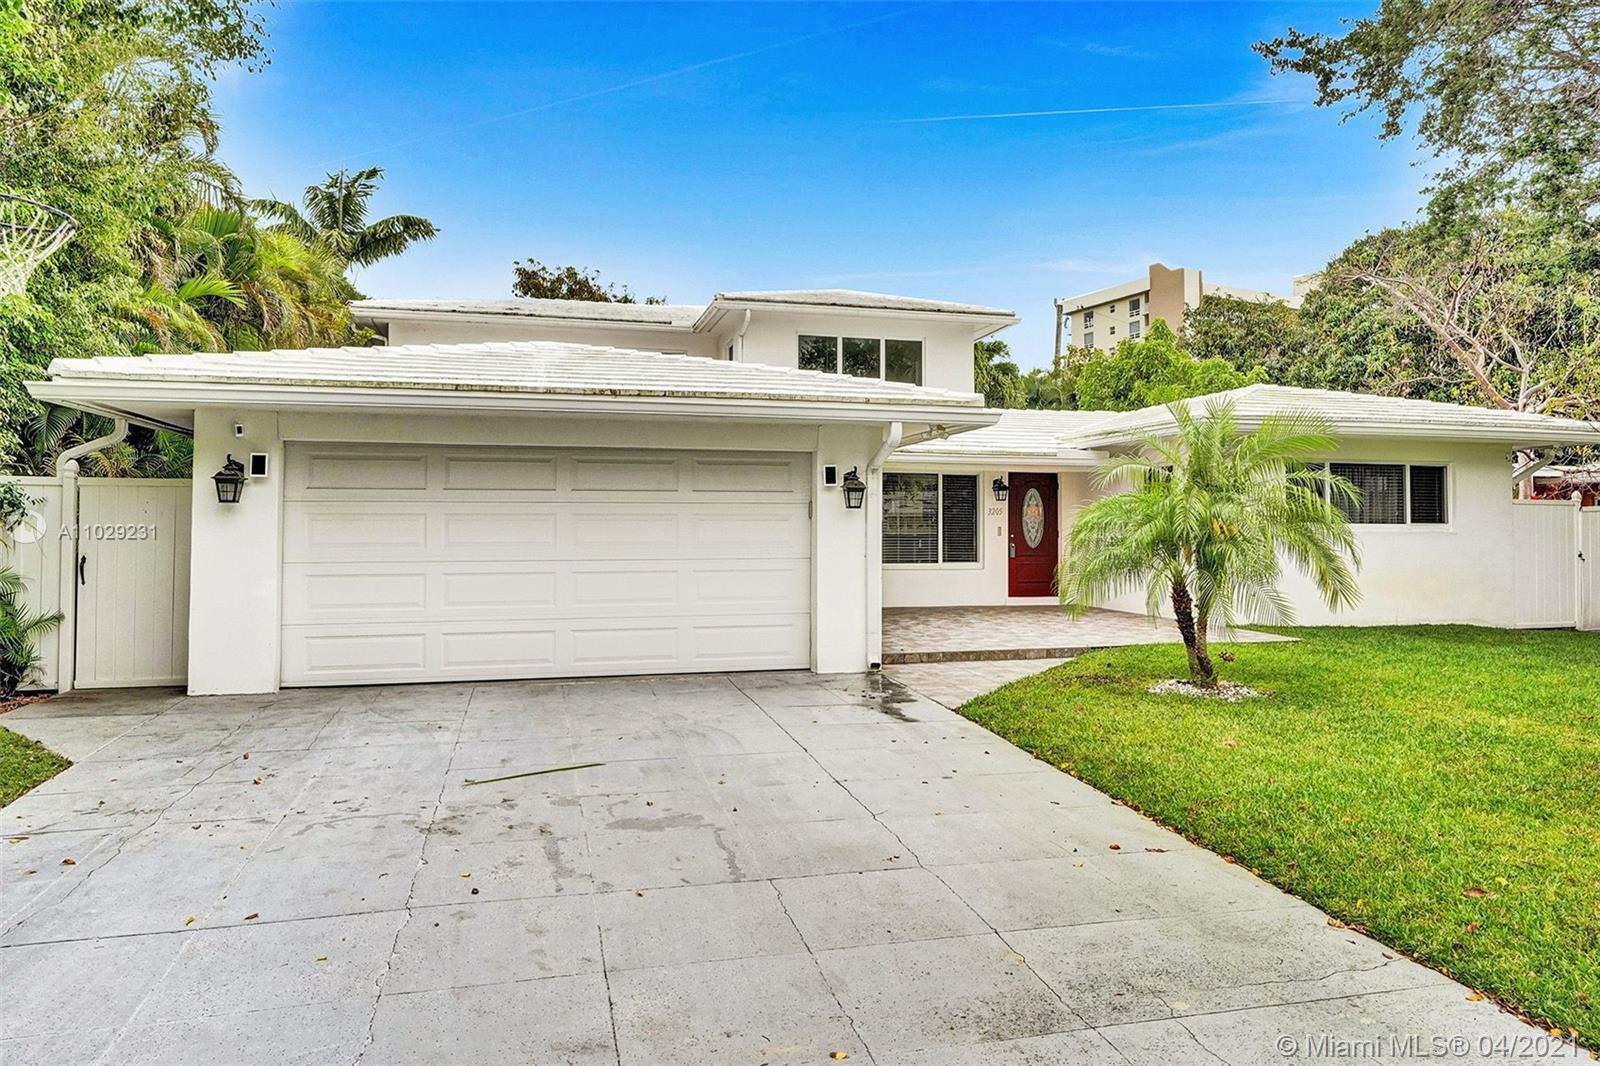 Killer Location Location Location! Gorgeous and spacious two story home with 4 beds and 4 bath in hi